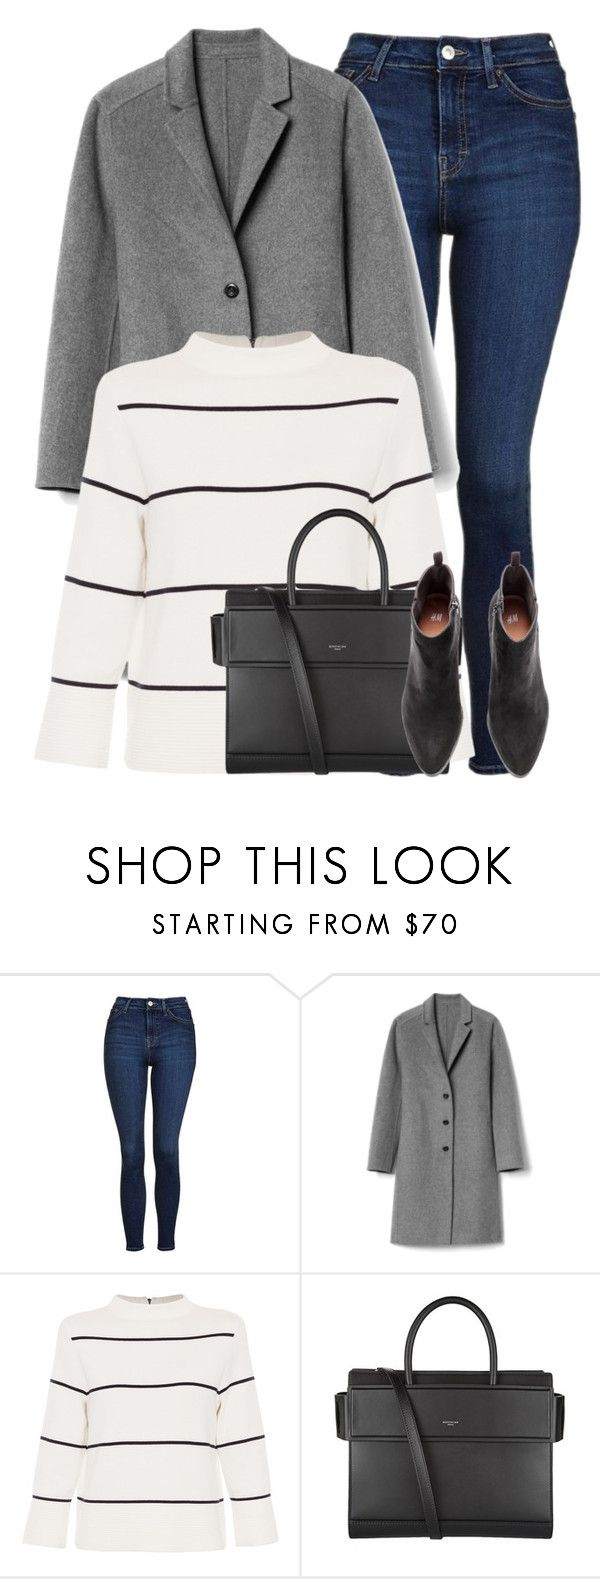 """Shopping"" by style-with-one-direction ❤ liked on Polyvore featuring Topshop, Gap, L.K.Bennett, Givenchy, stripes, Boots, jeans, jumper and jumper stripes boots jeans"